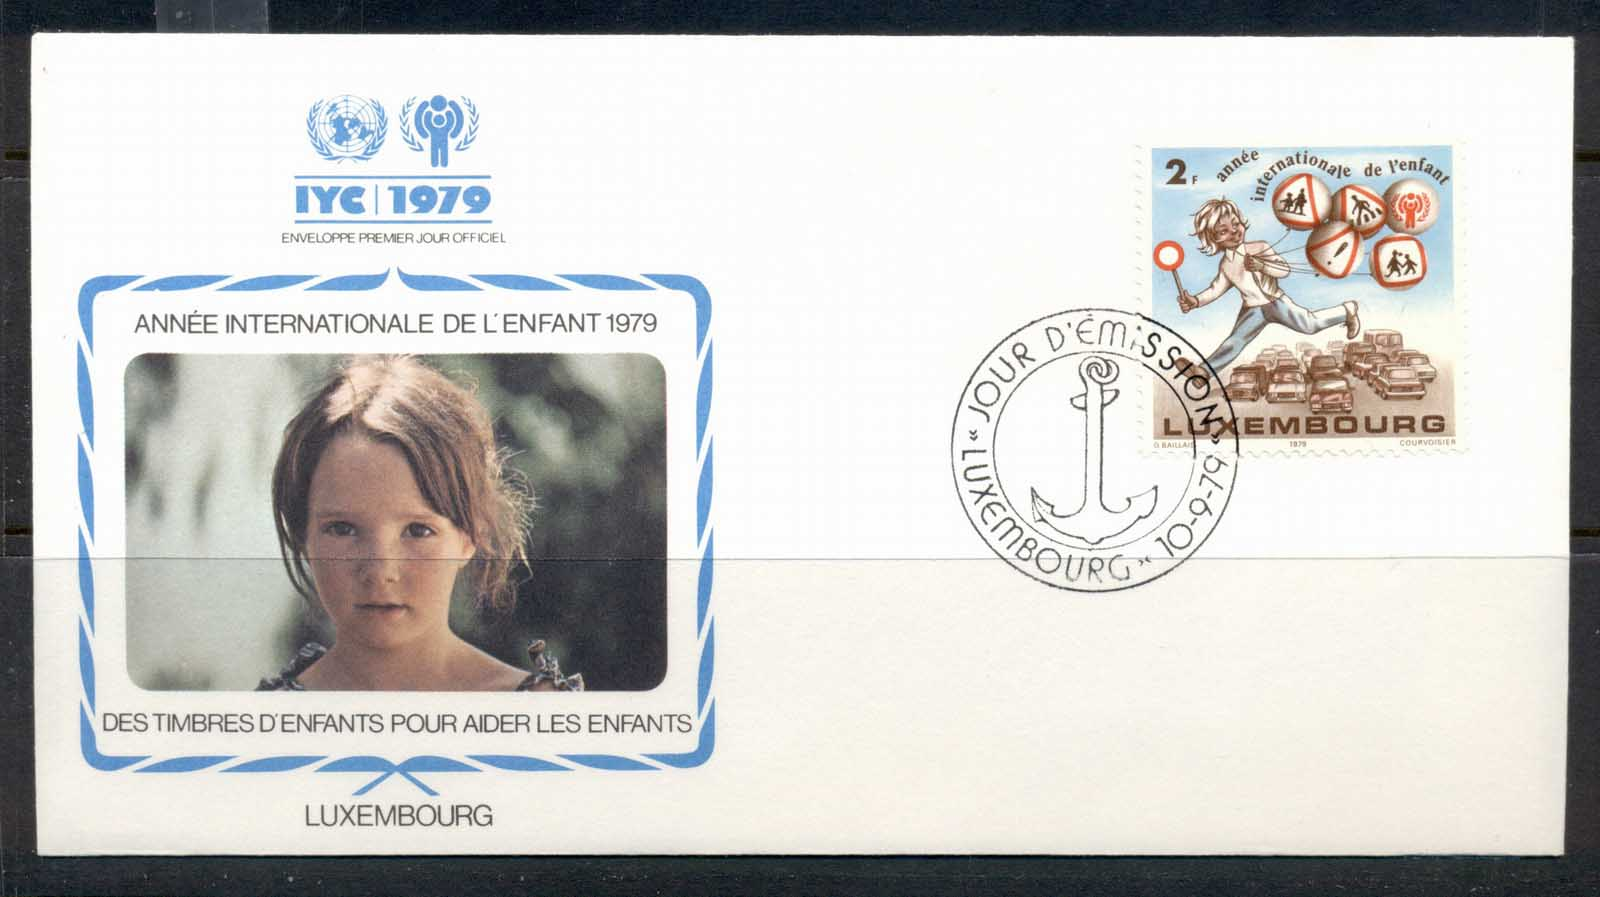 Luxembourg 1979 IYC International year of the Child FDC